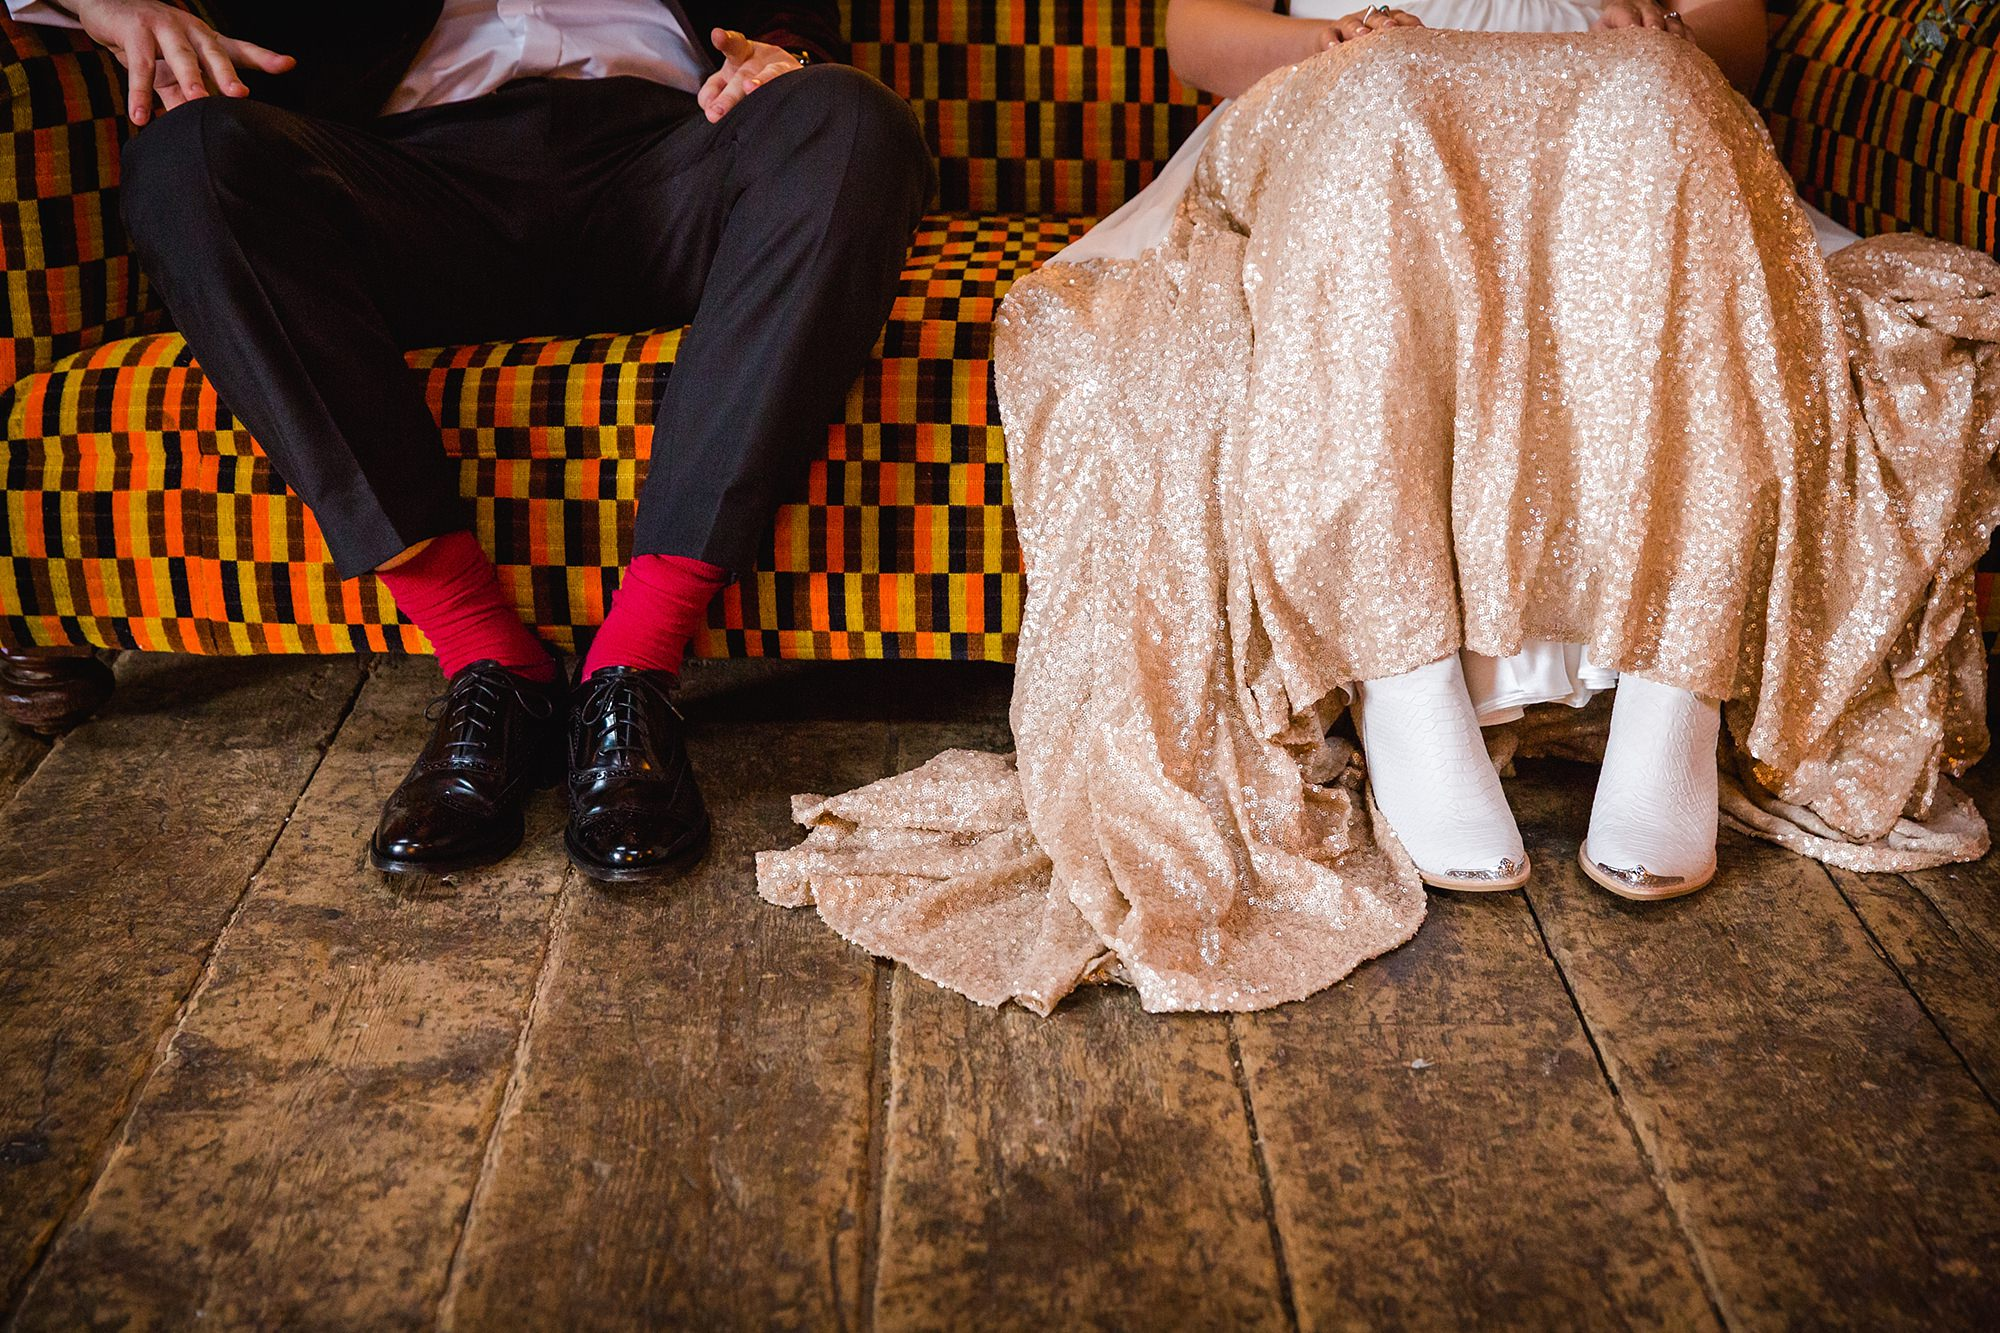 Fun London Wedding close up detail of bride's boots and groom's coloured socks sat in couch